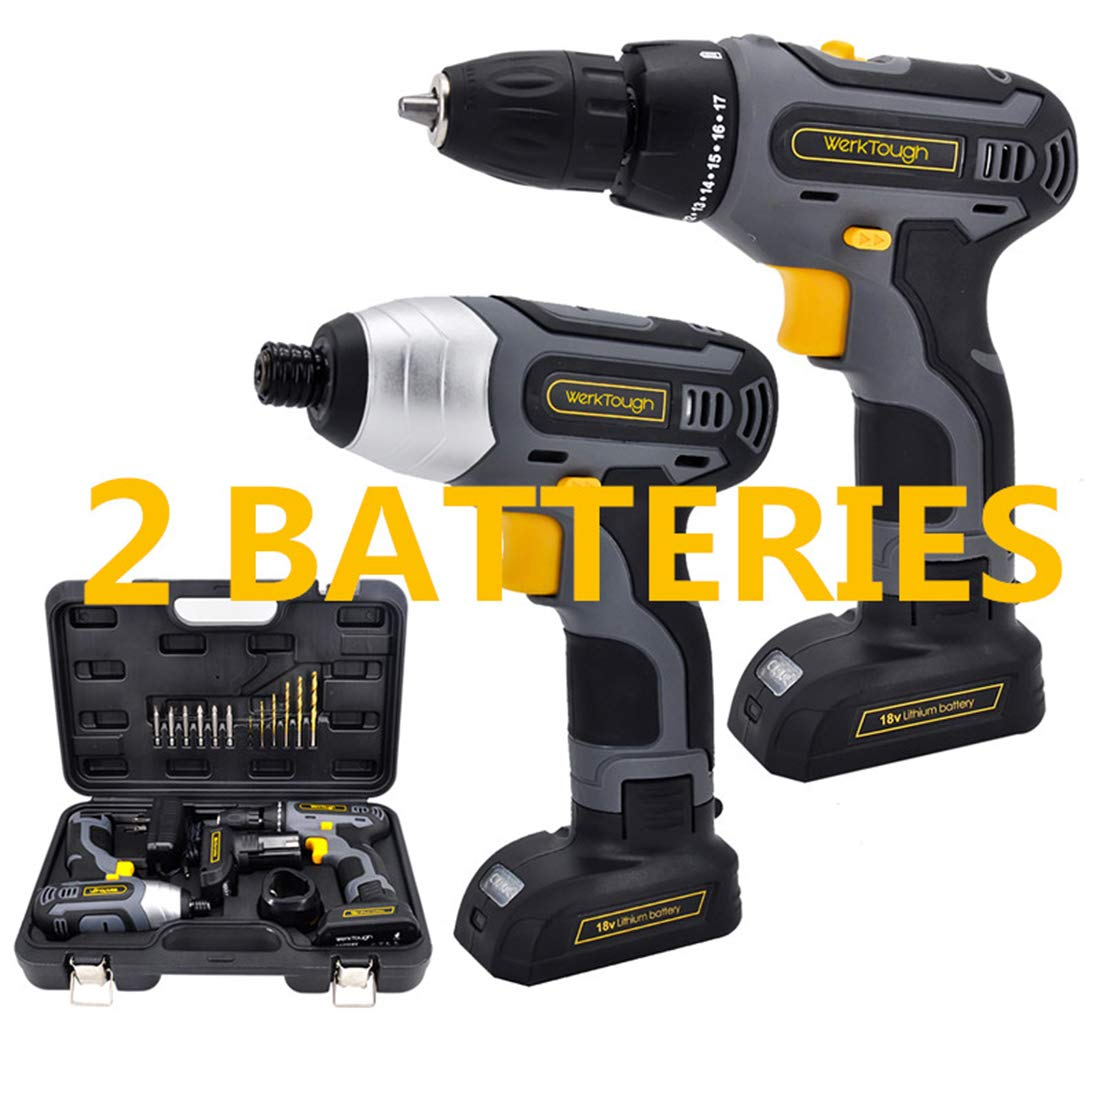 Werktough 17pcs Cordless Drill Driver Impact Screwdriver 1 4 Combo Kit 2 Lion BatterIies Tool Kit Home Improvement Tool Set Cordless Tools Home Repair With Fast Charger